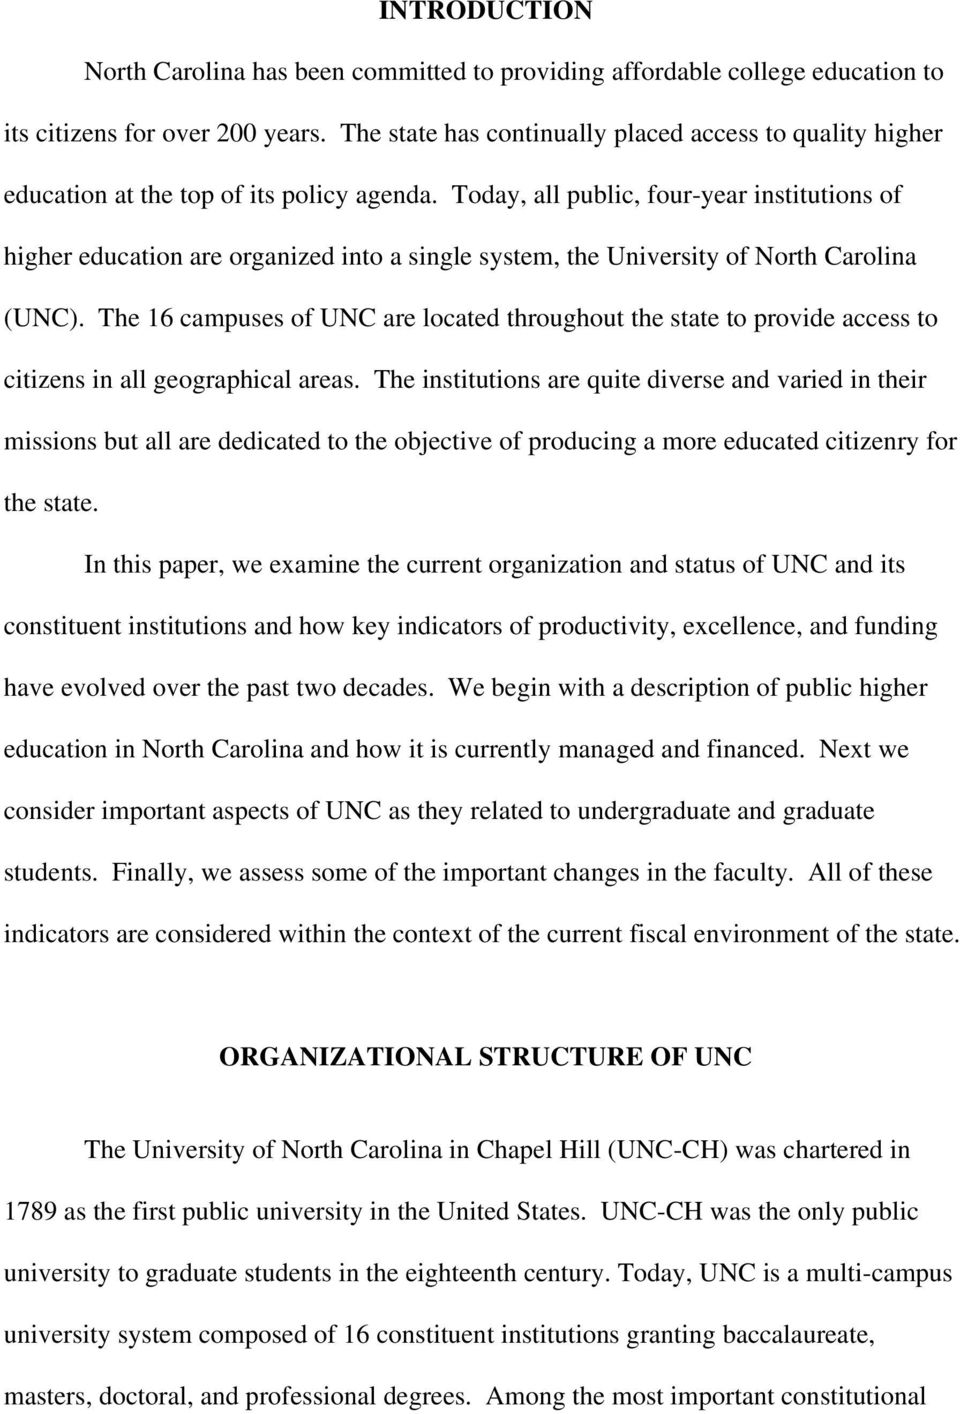 Today, all public, four-year institutions of higher education are organized into a single system, the University of North Carolina (UNC).